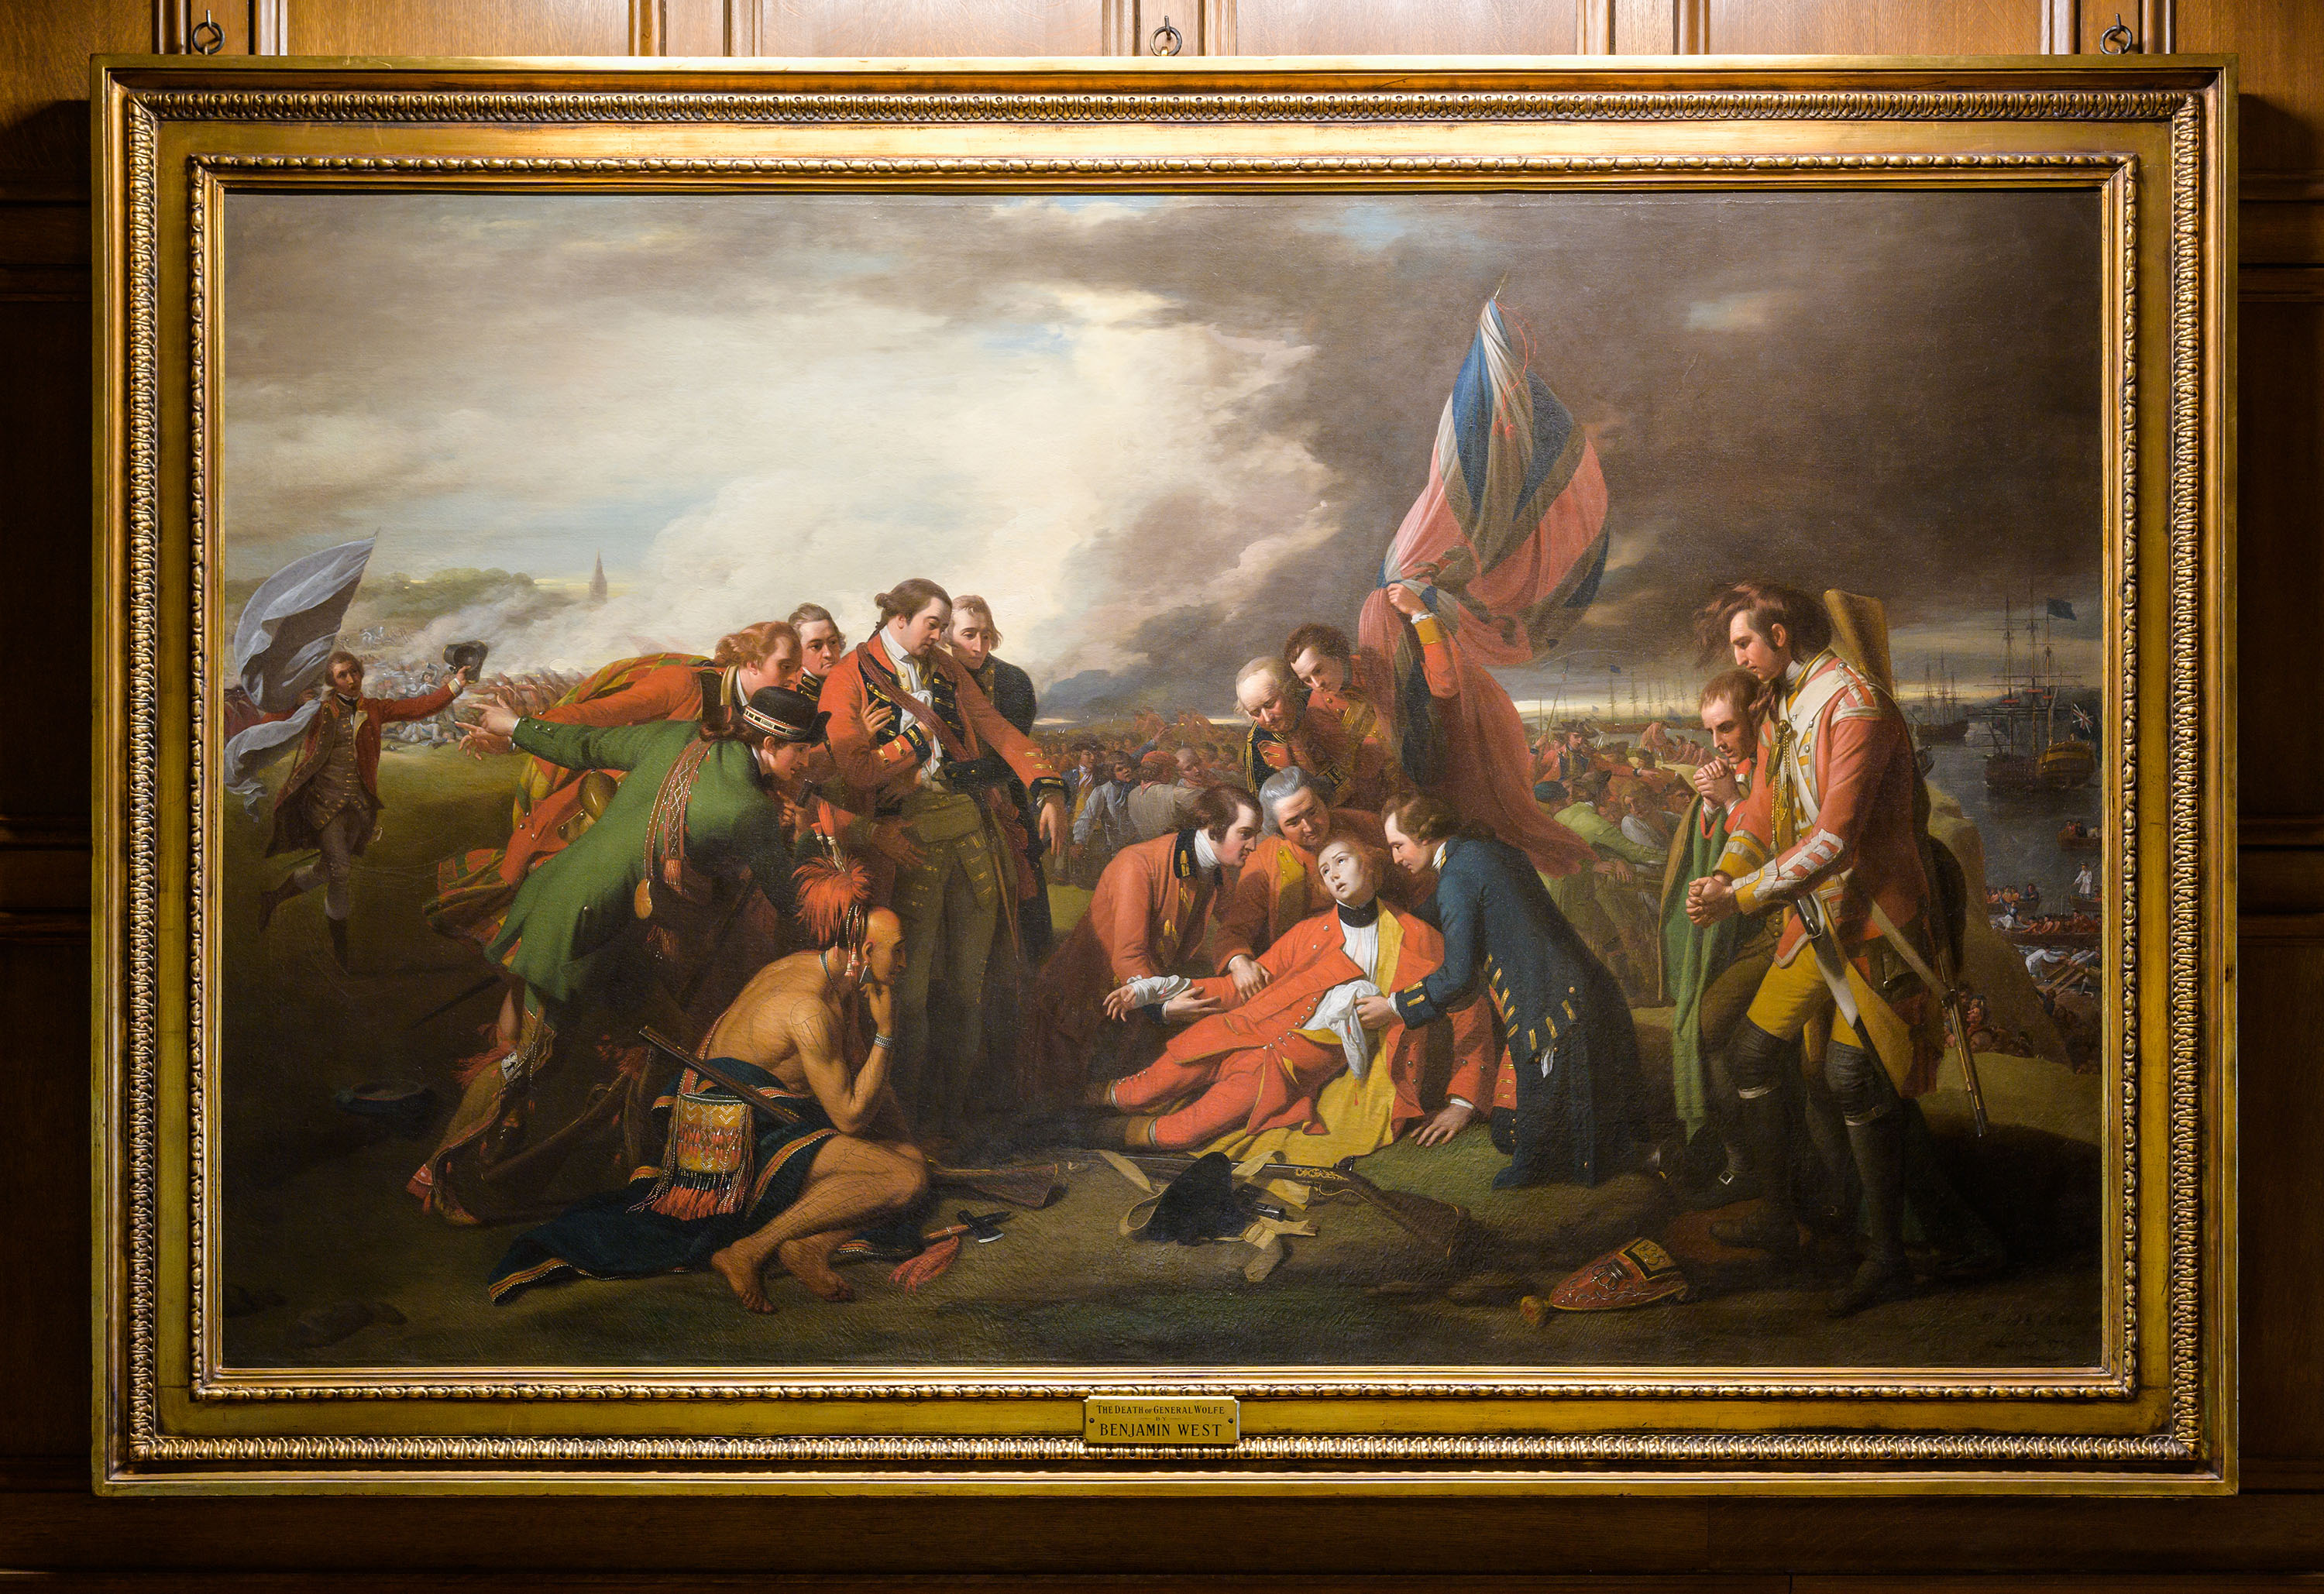 The Death of General Wolfe, a painting by Benjamin West, at the Clements Library.